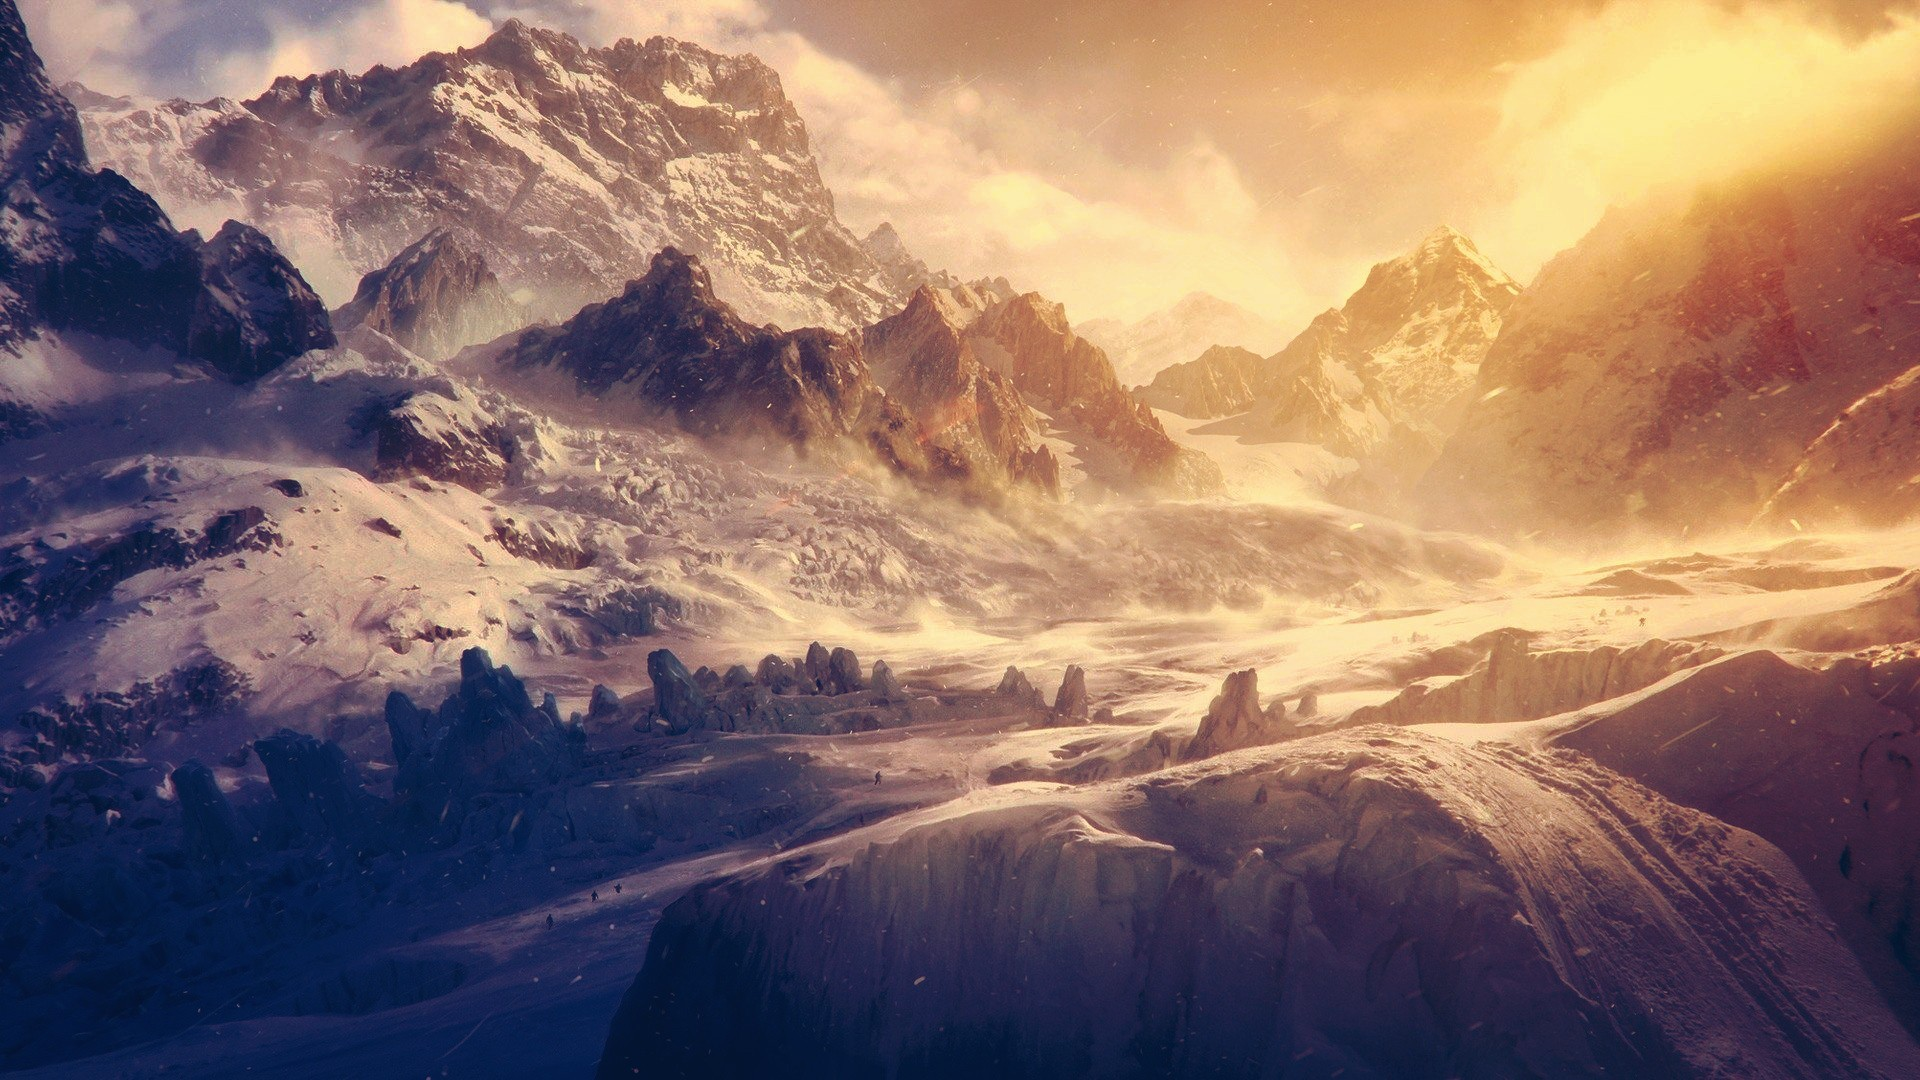 snow-mountains-landscapes-hd-wallpapers.jpg (1920×1080)